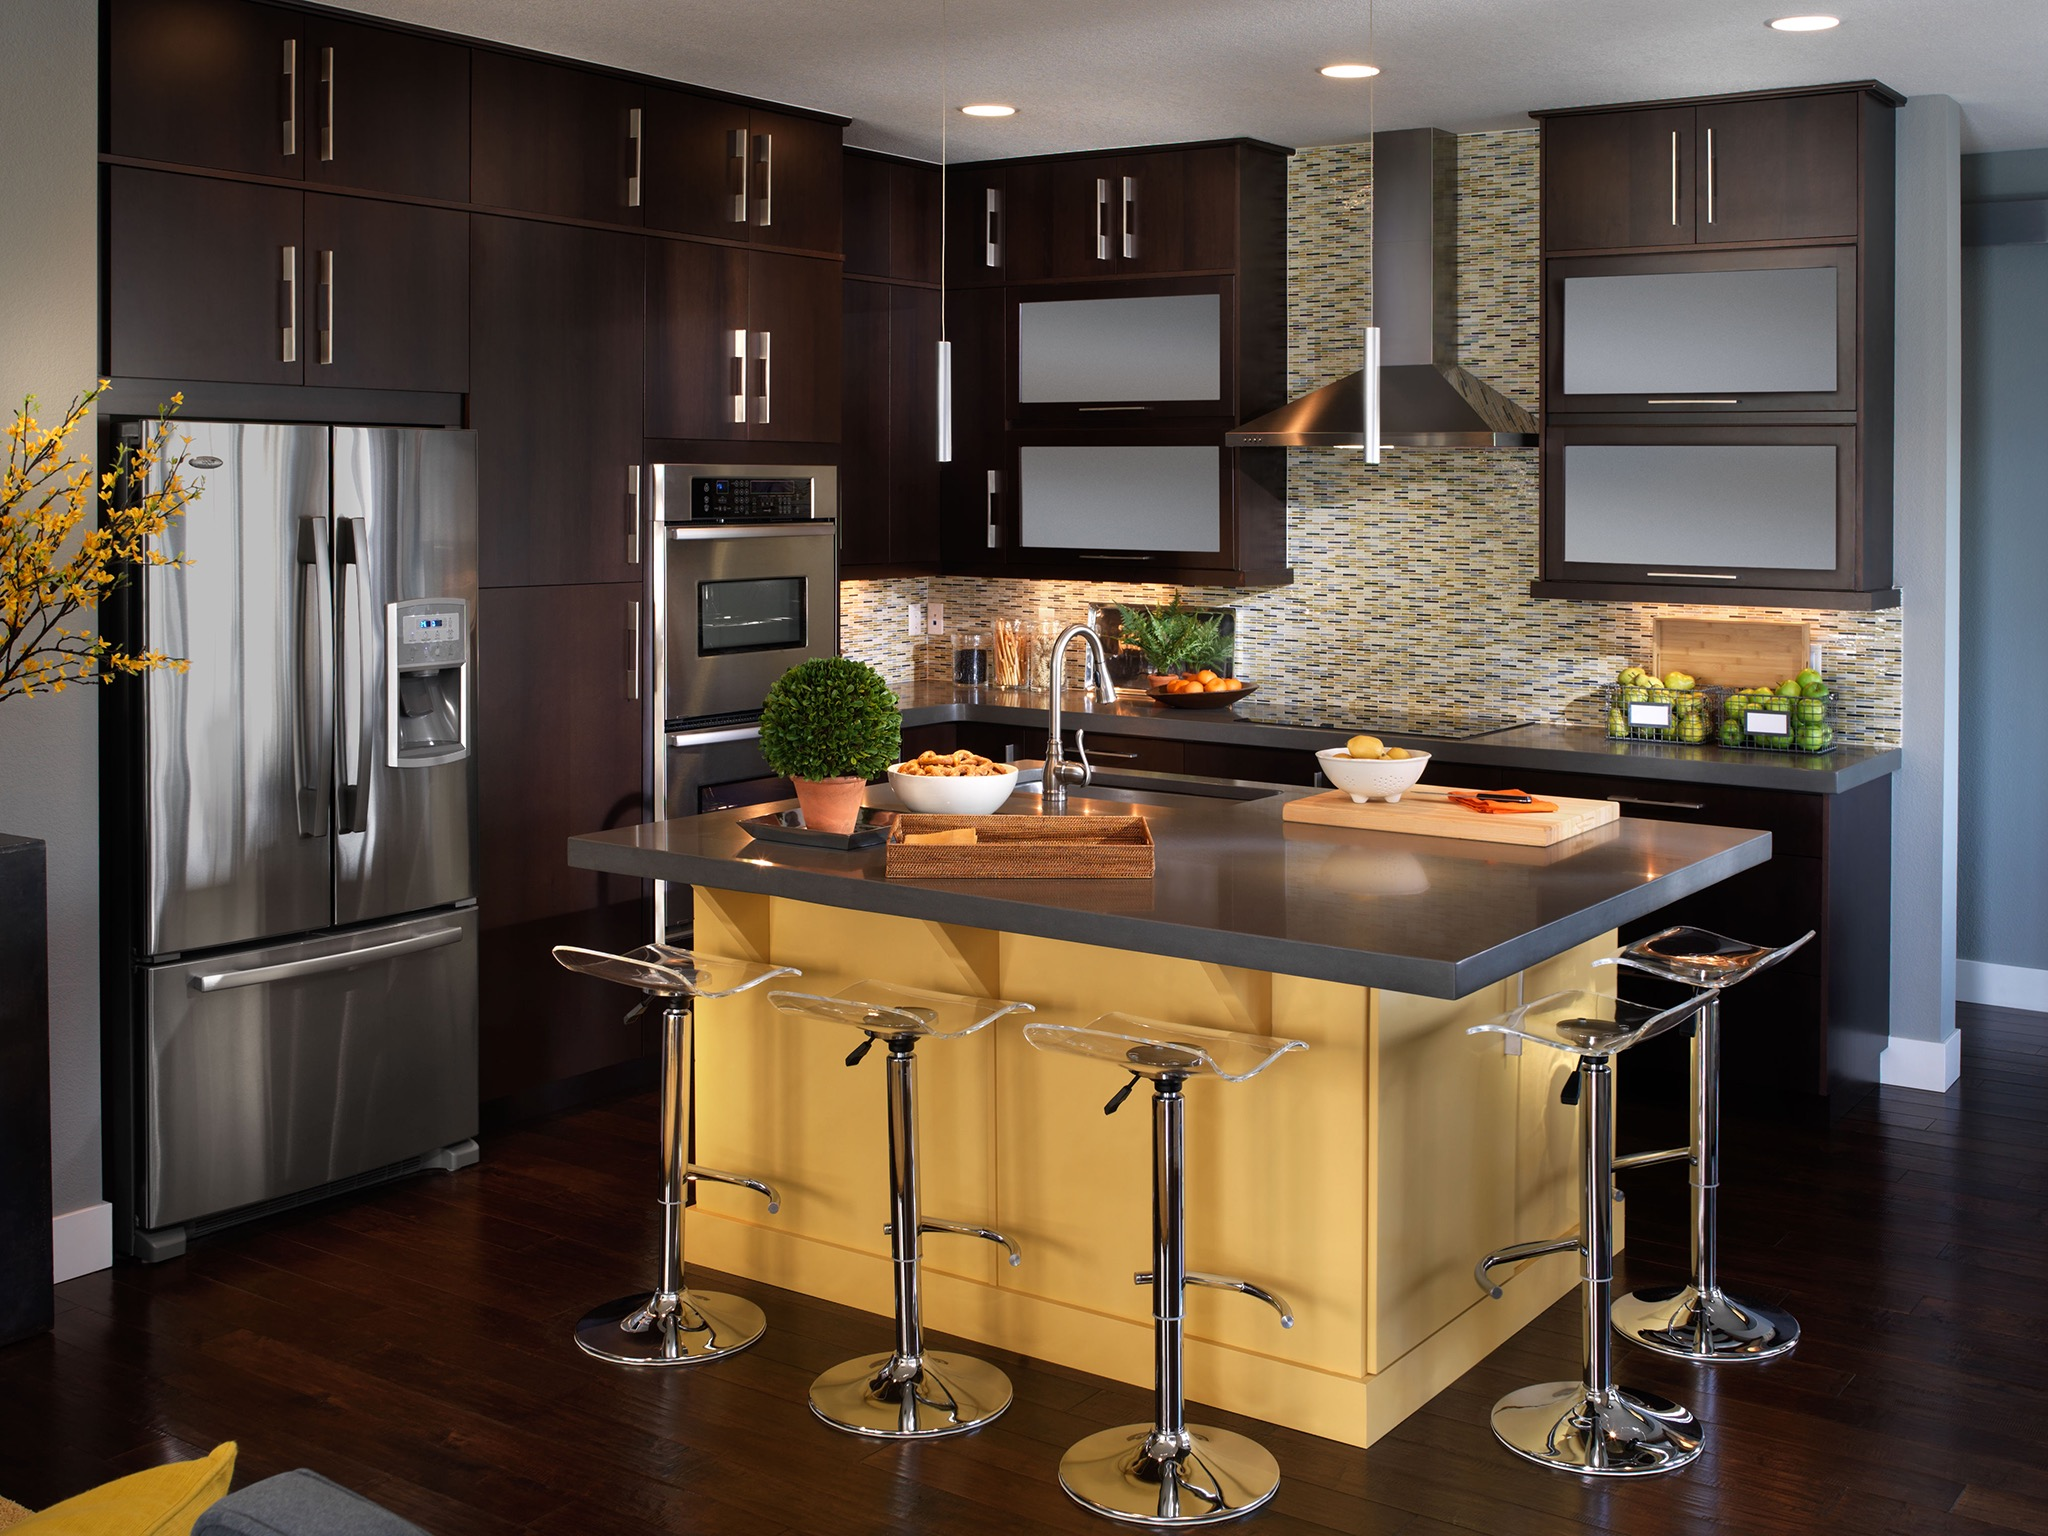 Dark Cabinetry For Contemporary Kitchen (Image 4 of 18)